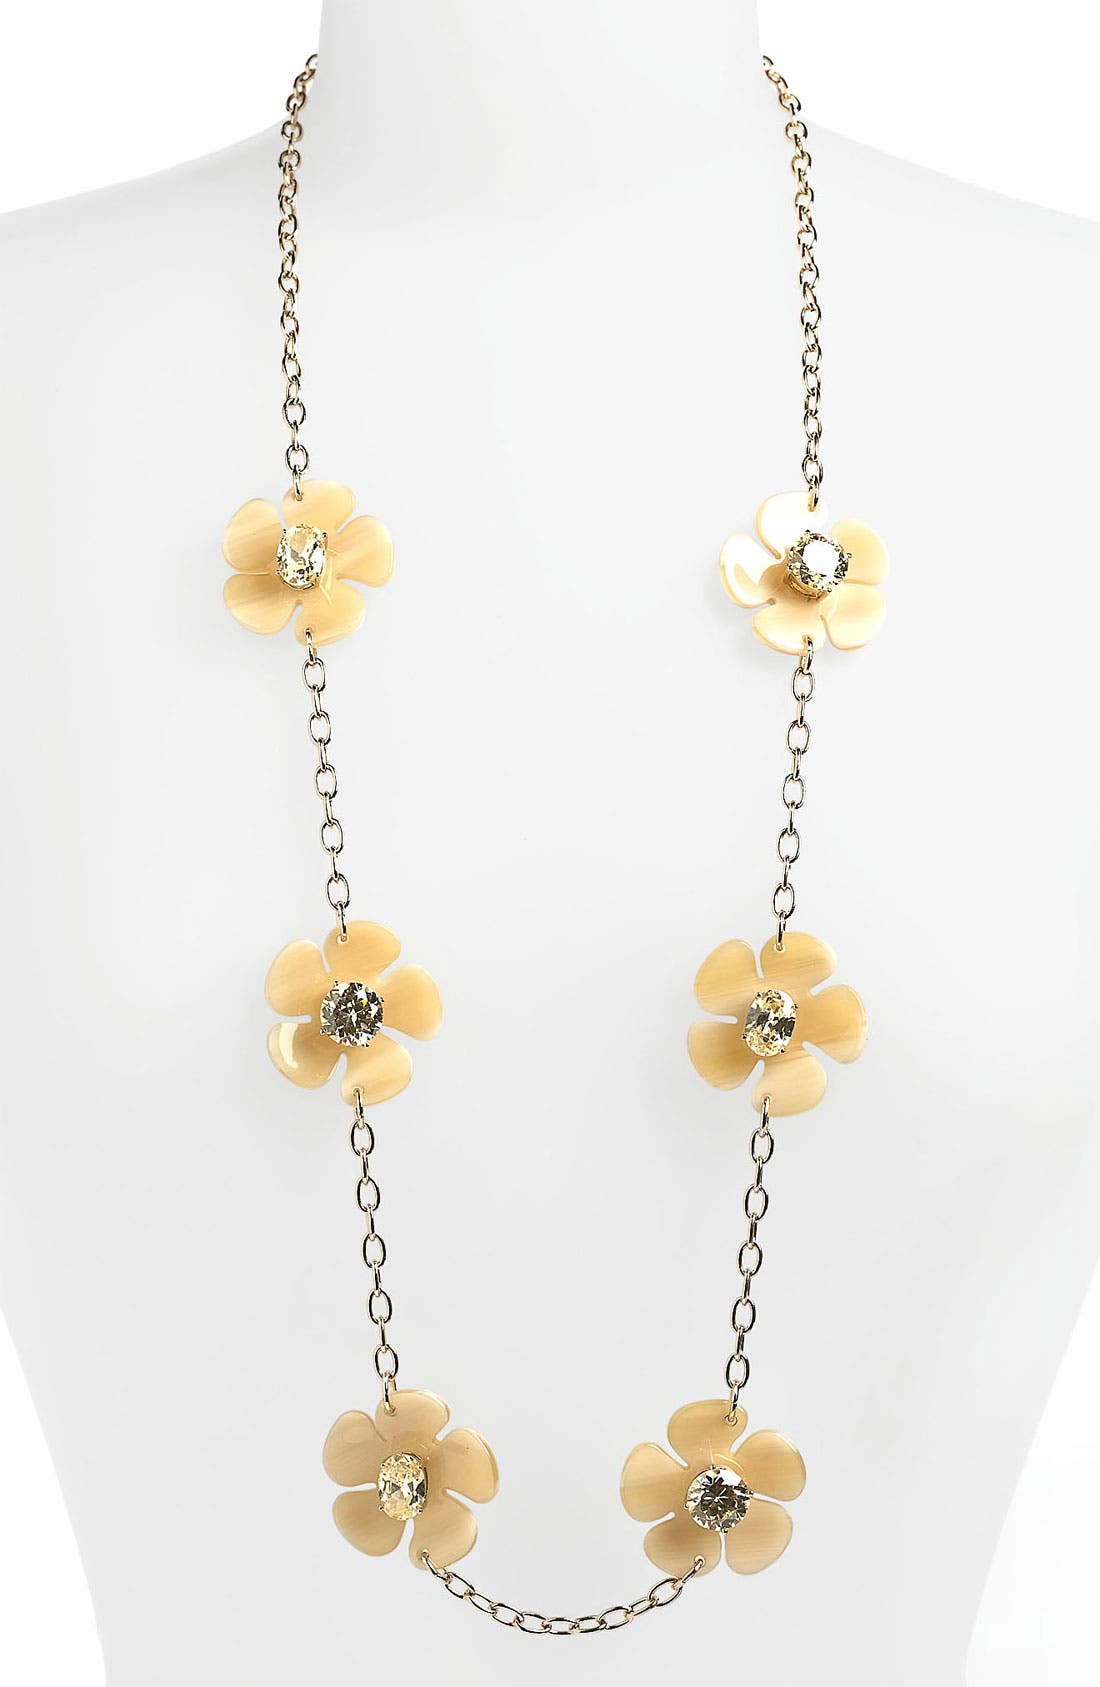 Alternate Image 1 Selected - Tory Burch 'Flora' Long Station Necklace